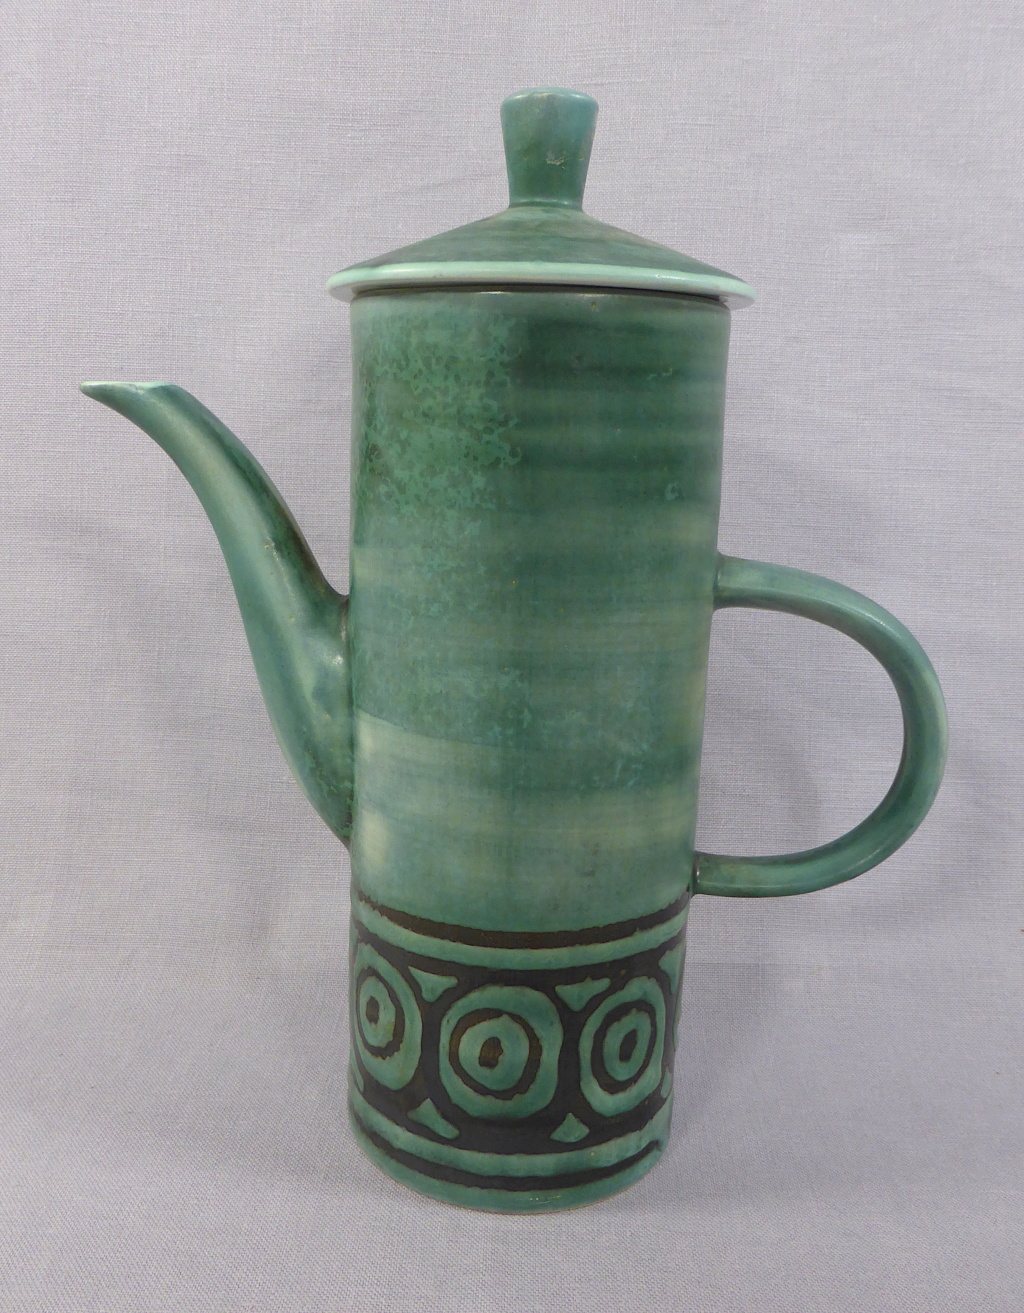 1970s Coffee Pot by Cinque Ports Rye  P1650918